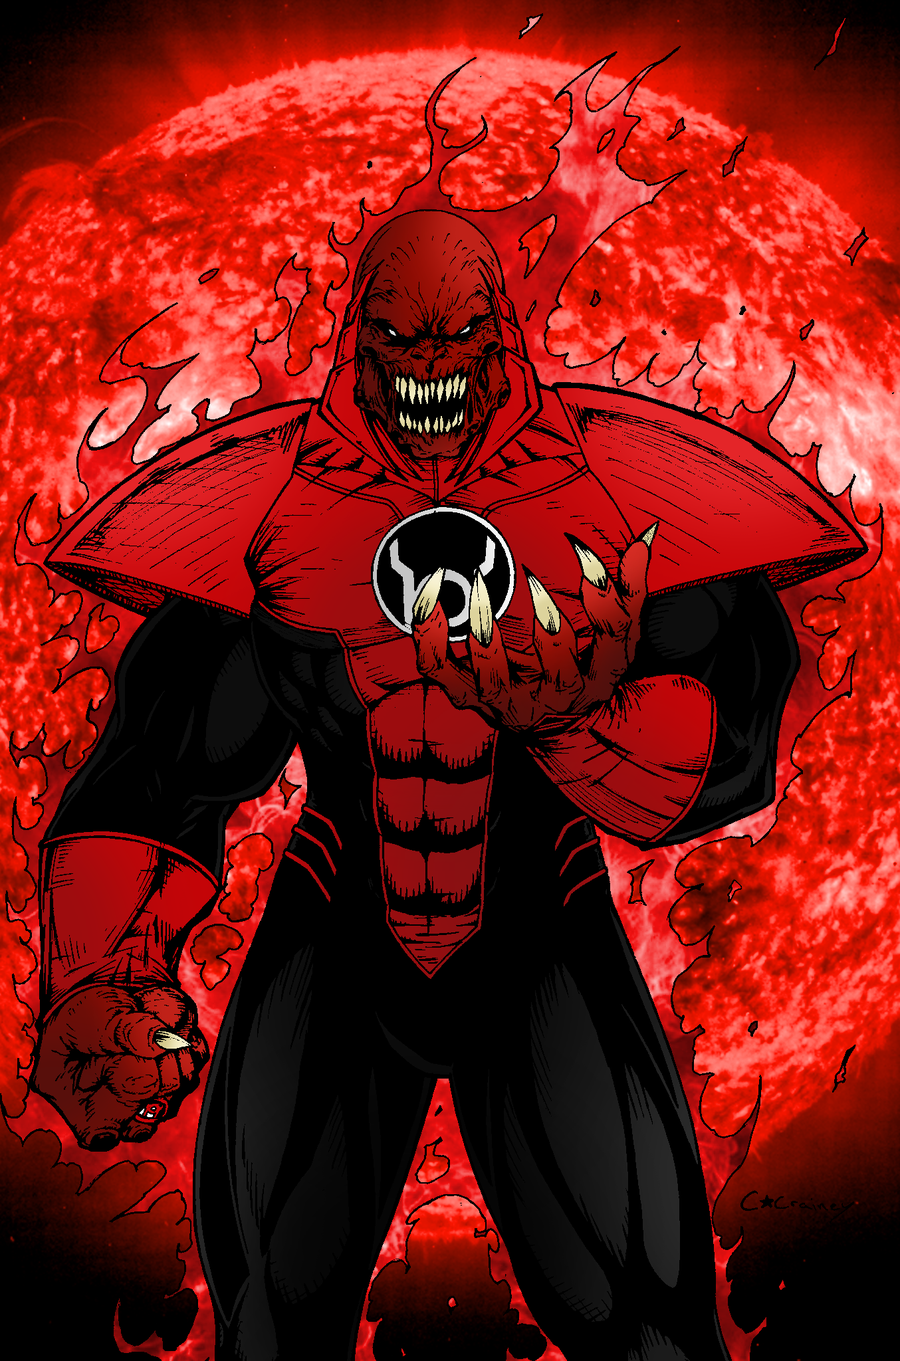 130 Atrocitus The Red Lantern Corps Ideas Red Lantern Corps Red Lantern Green Lantern